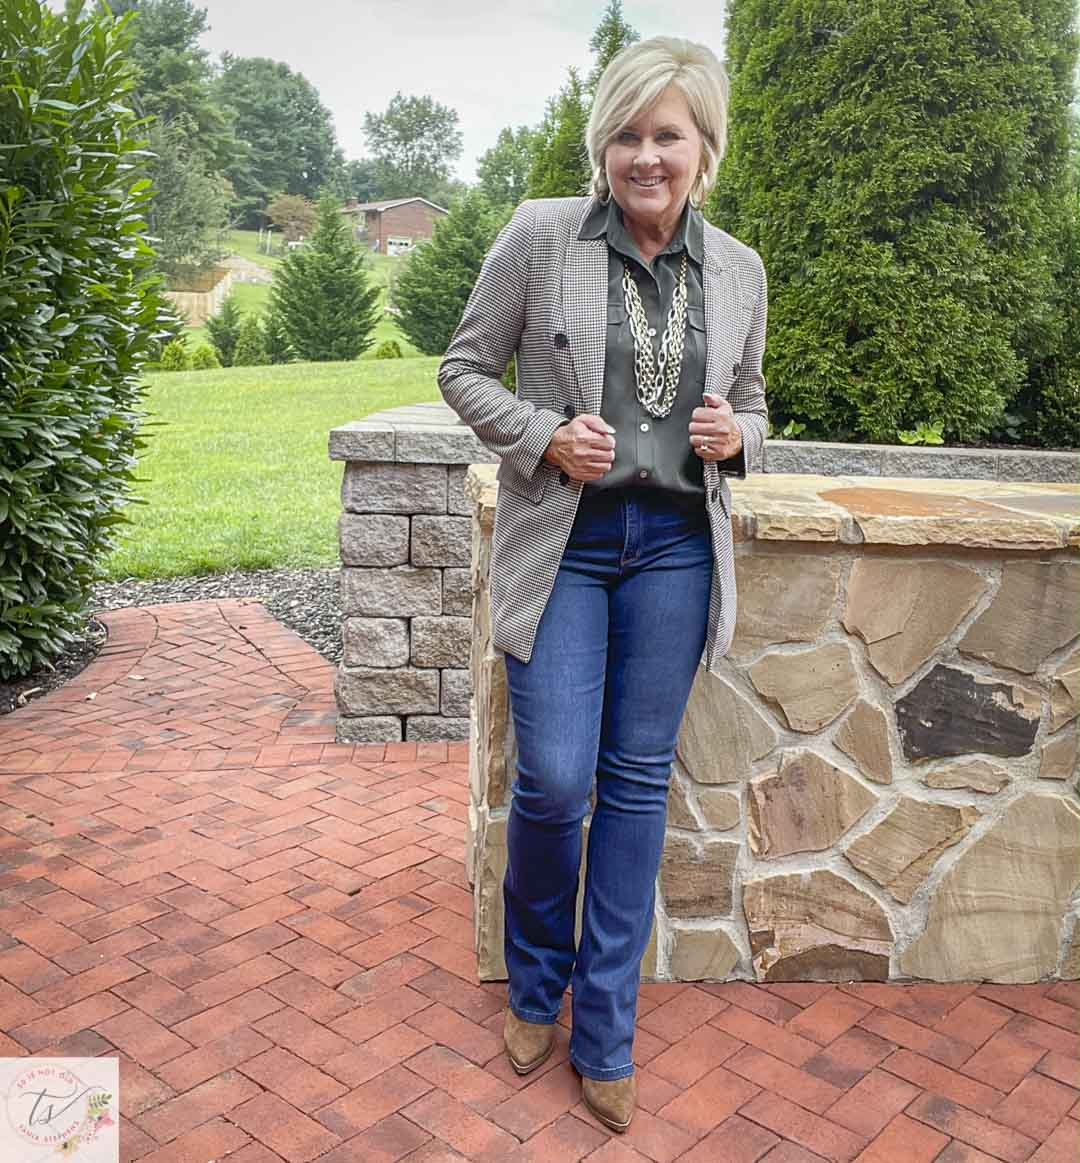 Over 40 Fashion Blogger, Tania Stephens, is wearing a plaid blazer with an olive button-up shirt, bootcut jeans, gold jewelry, and suede ankle boots